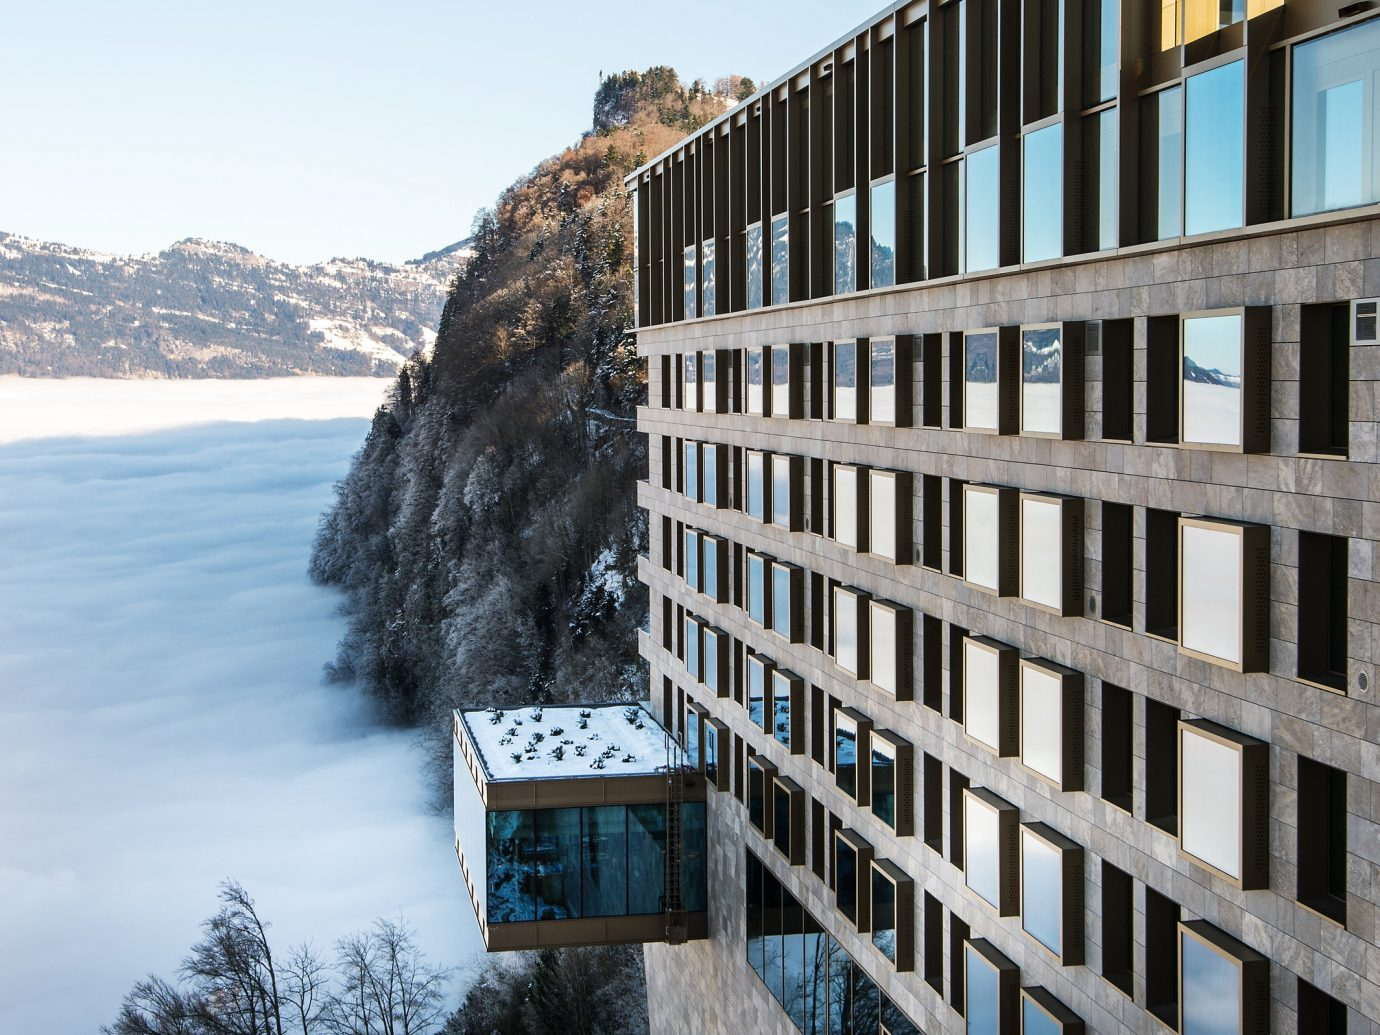 Boutique Hotels Hotels Luxury Travel outdoor sky tree Winter snow building reflection condominium Architecture water urban area residential area City apartment house real estate freezing facade home window mountain mountain range ice glacial landform